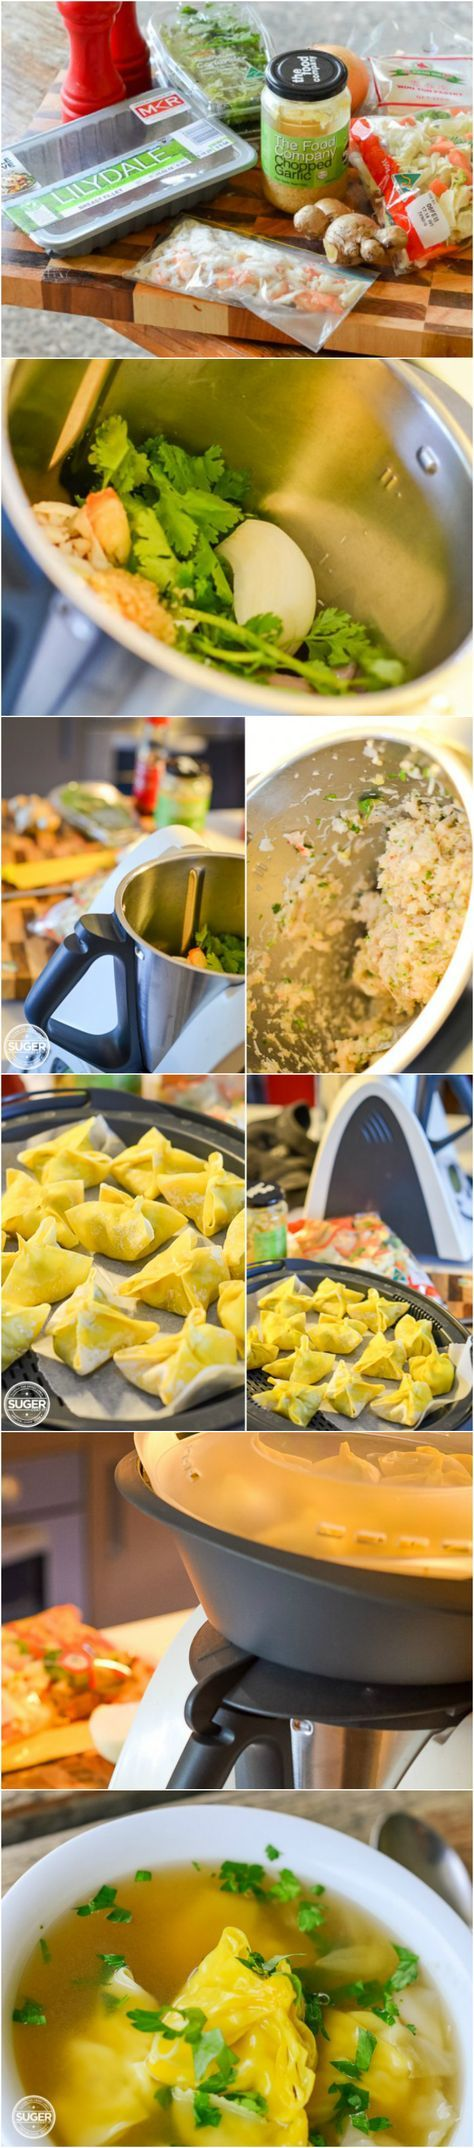 Simple Home Made Thermomix Won Ton Soup #easy #family #soup #dinner #meal